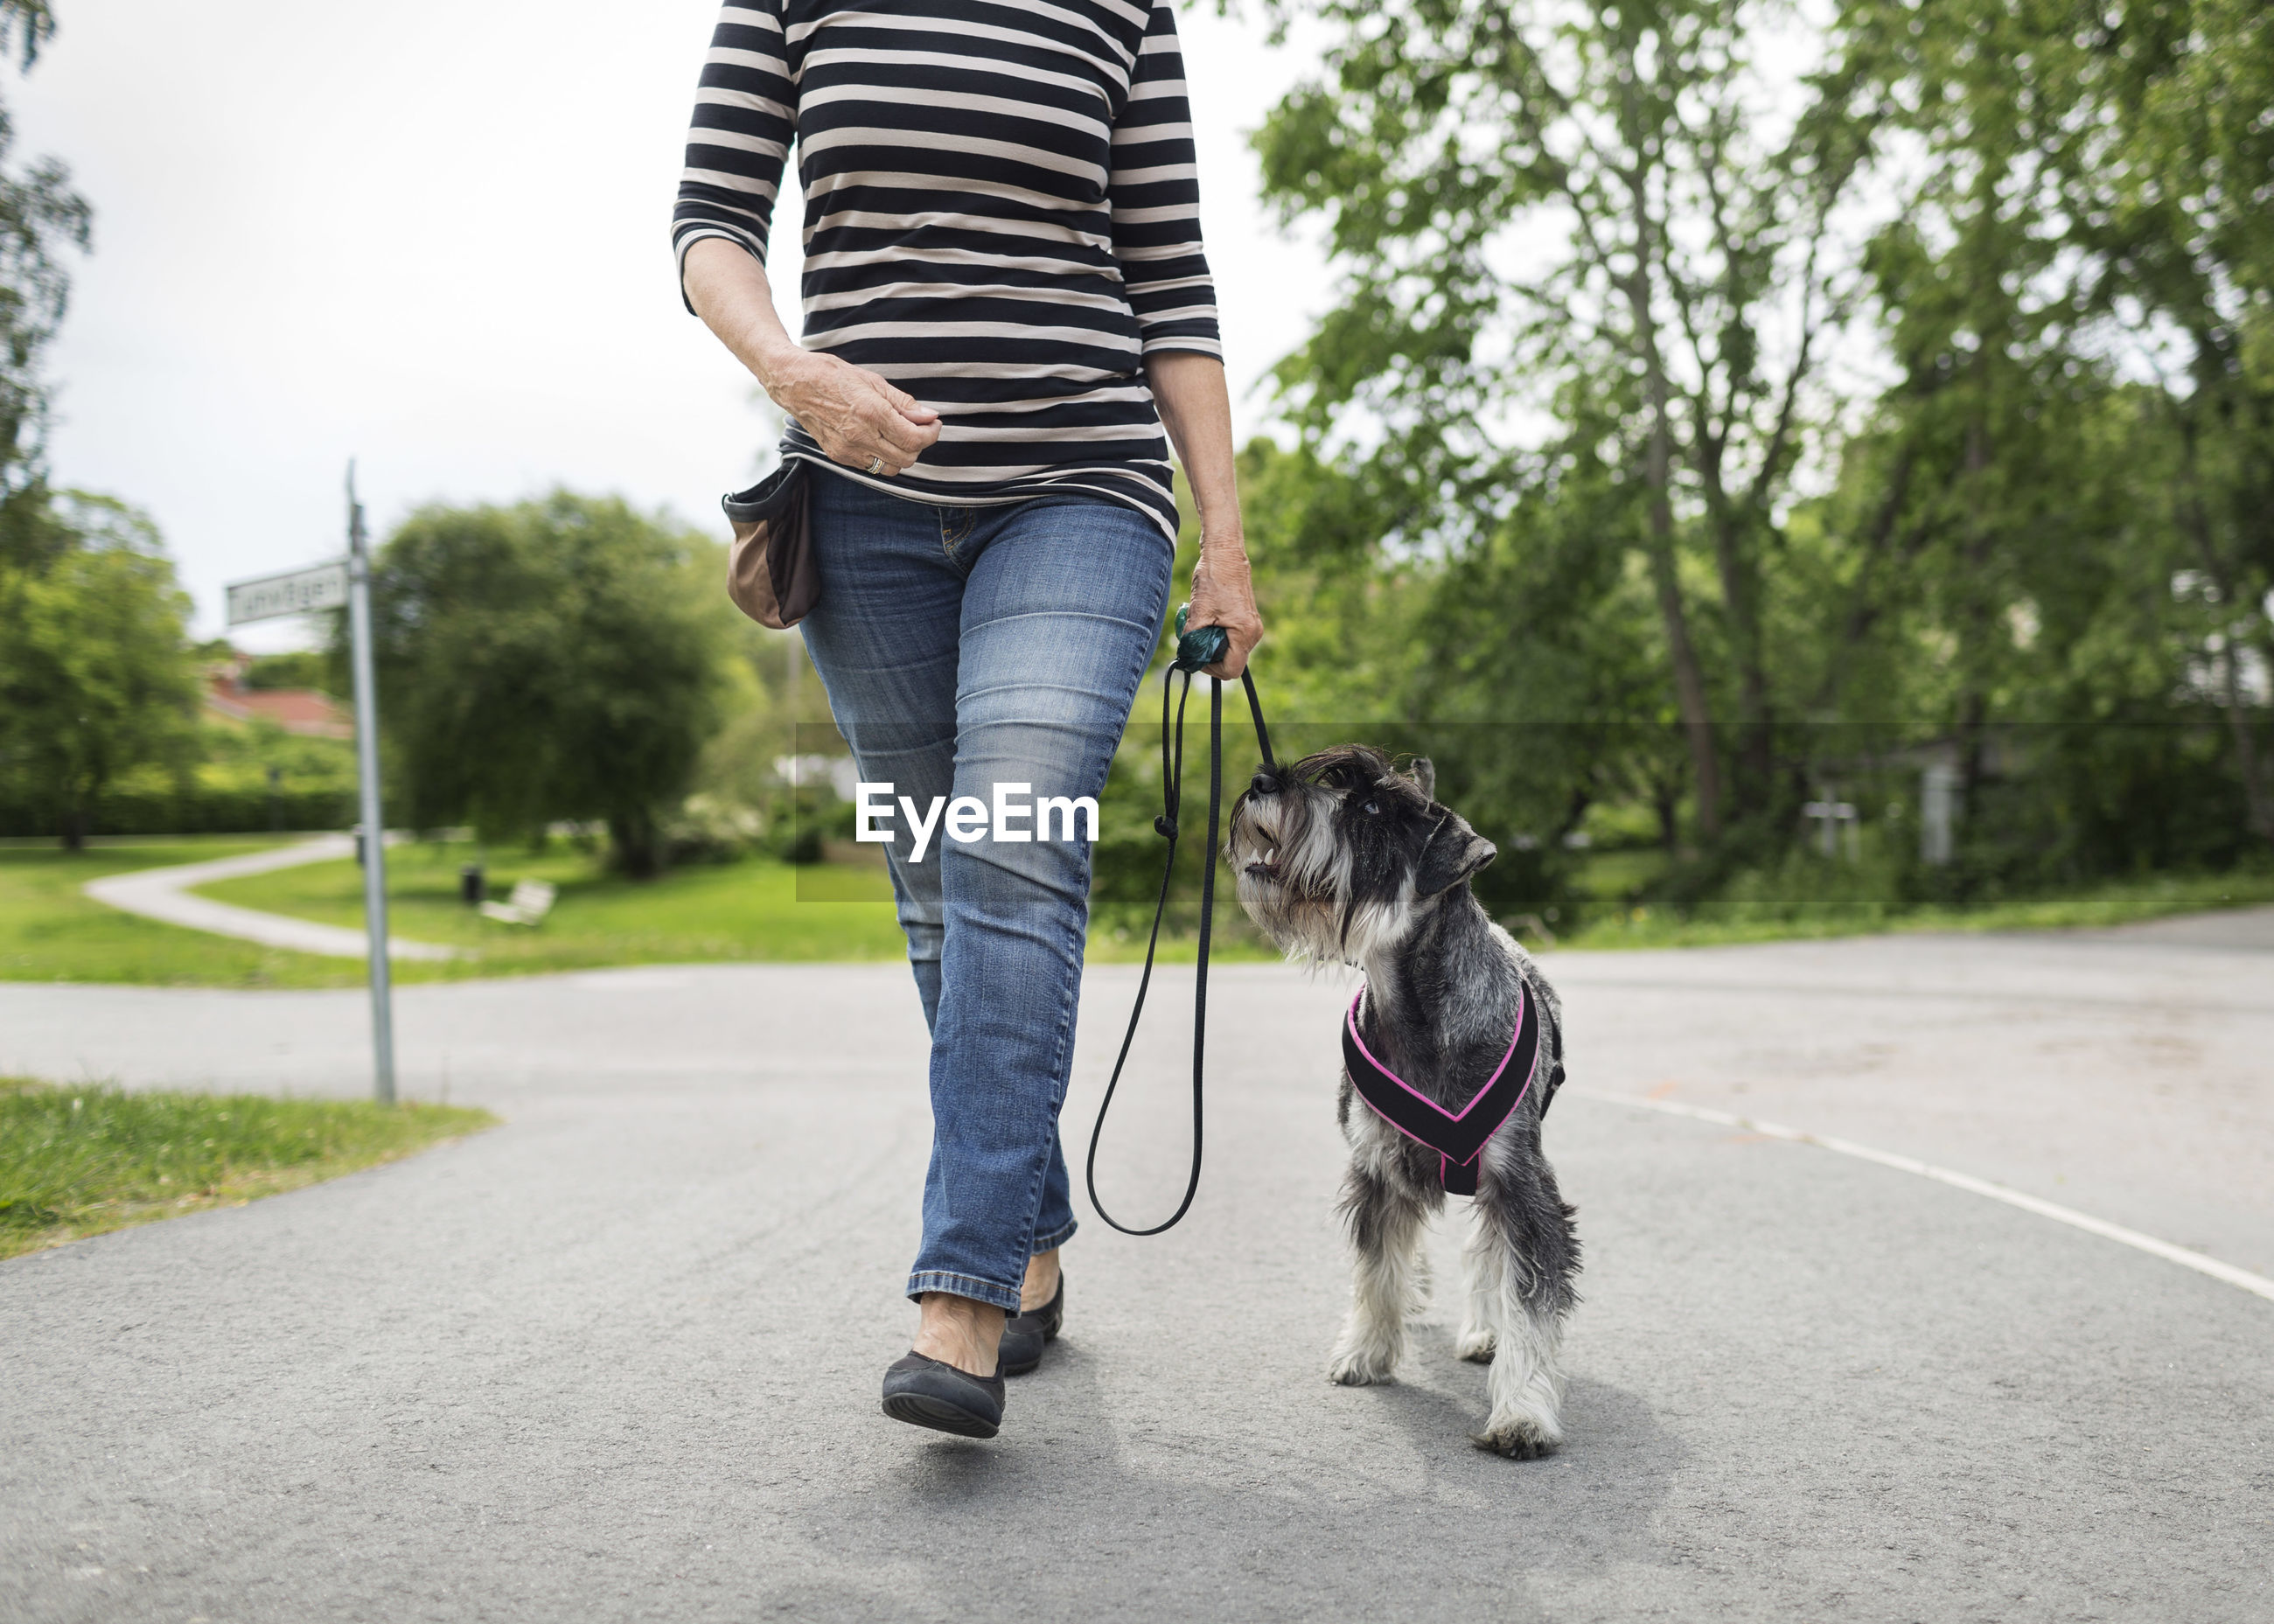 LOW SECTION OF PERSON WITH DOG STANDING ON ZEBRA CROSSING